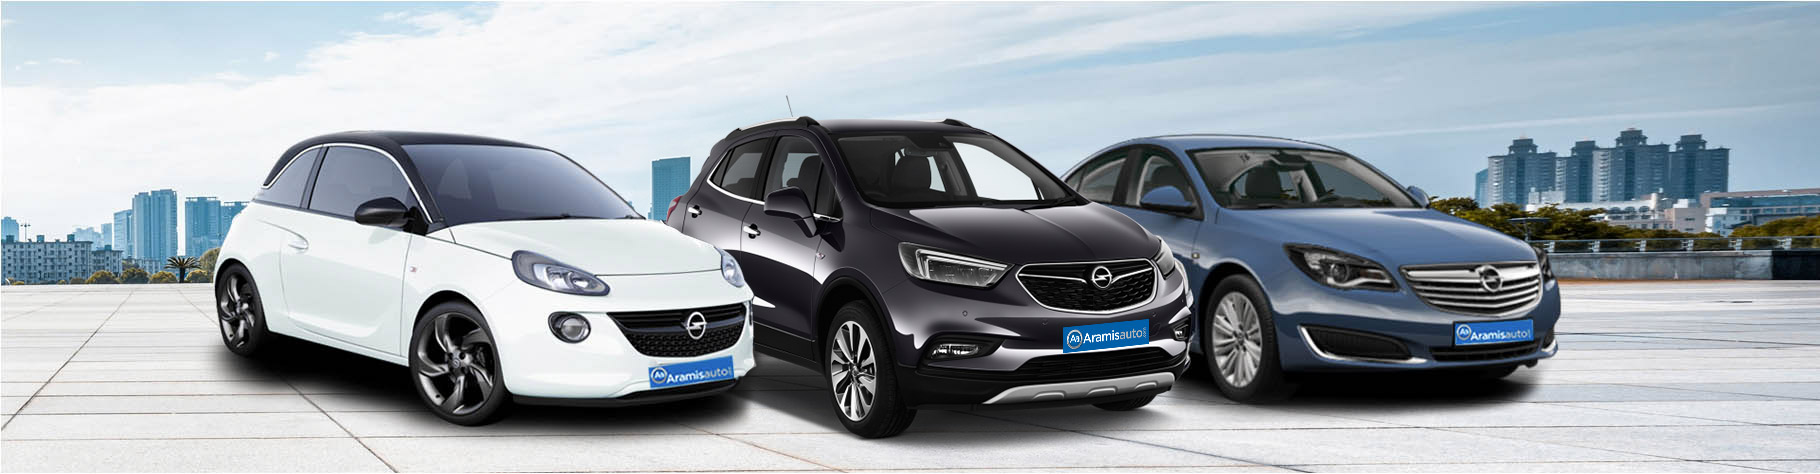 Guide d'achat Opel